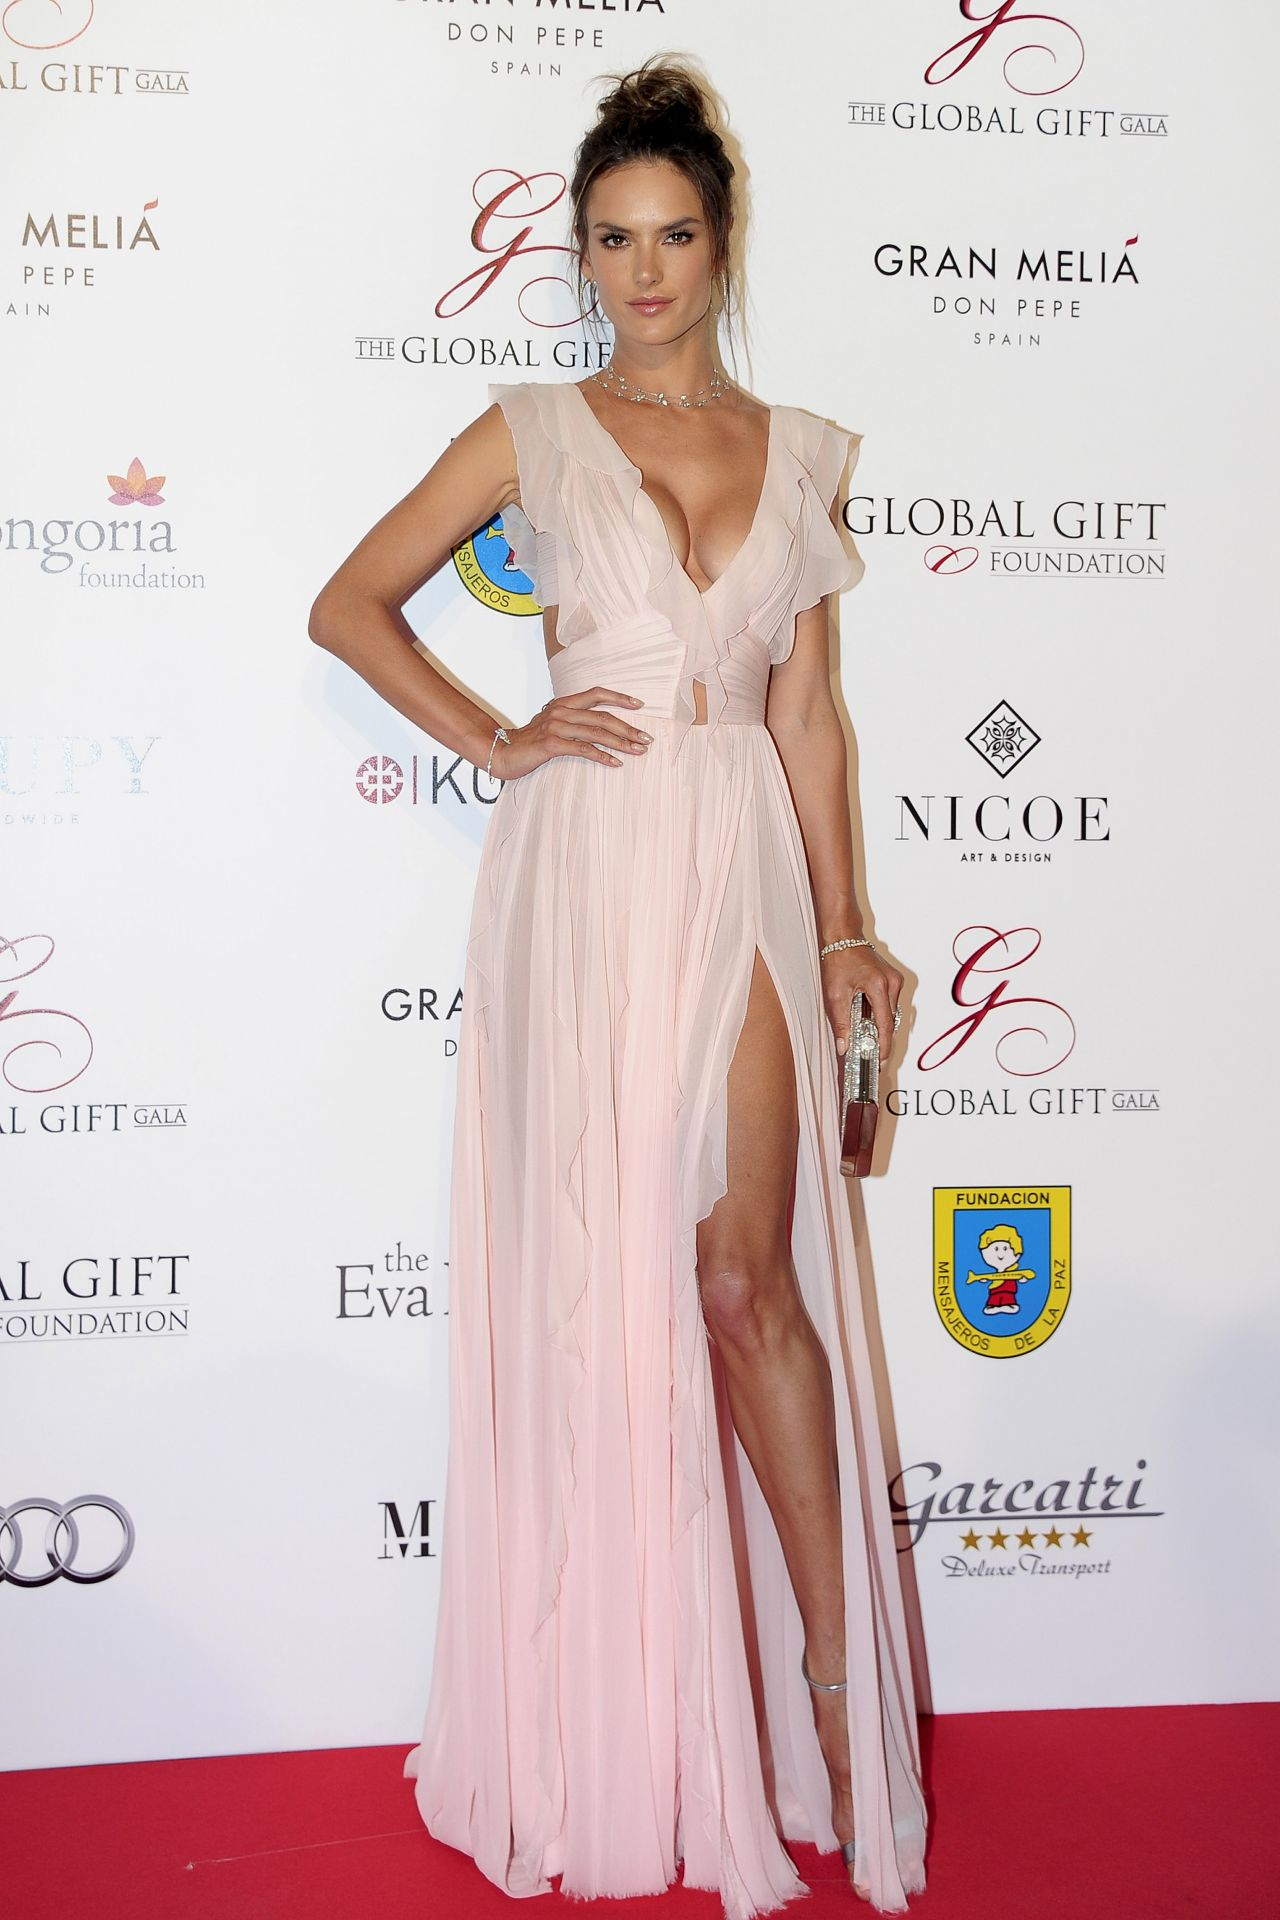 alessandra-ambrosio-global-gift-gala-in-marbella-spain-7-17-2016-3